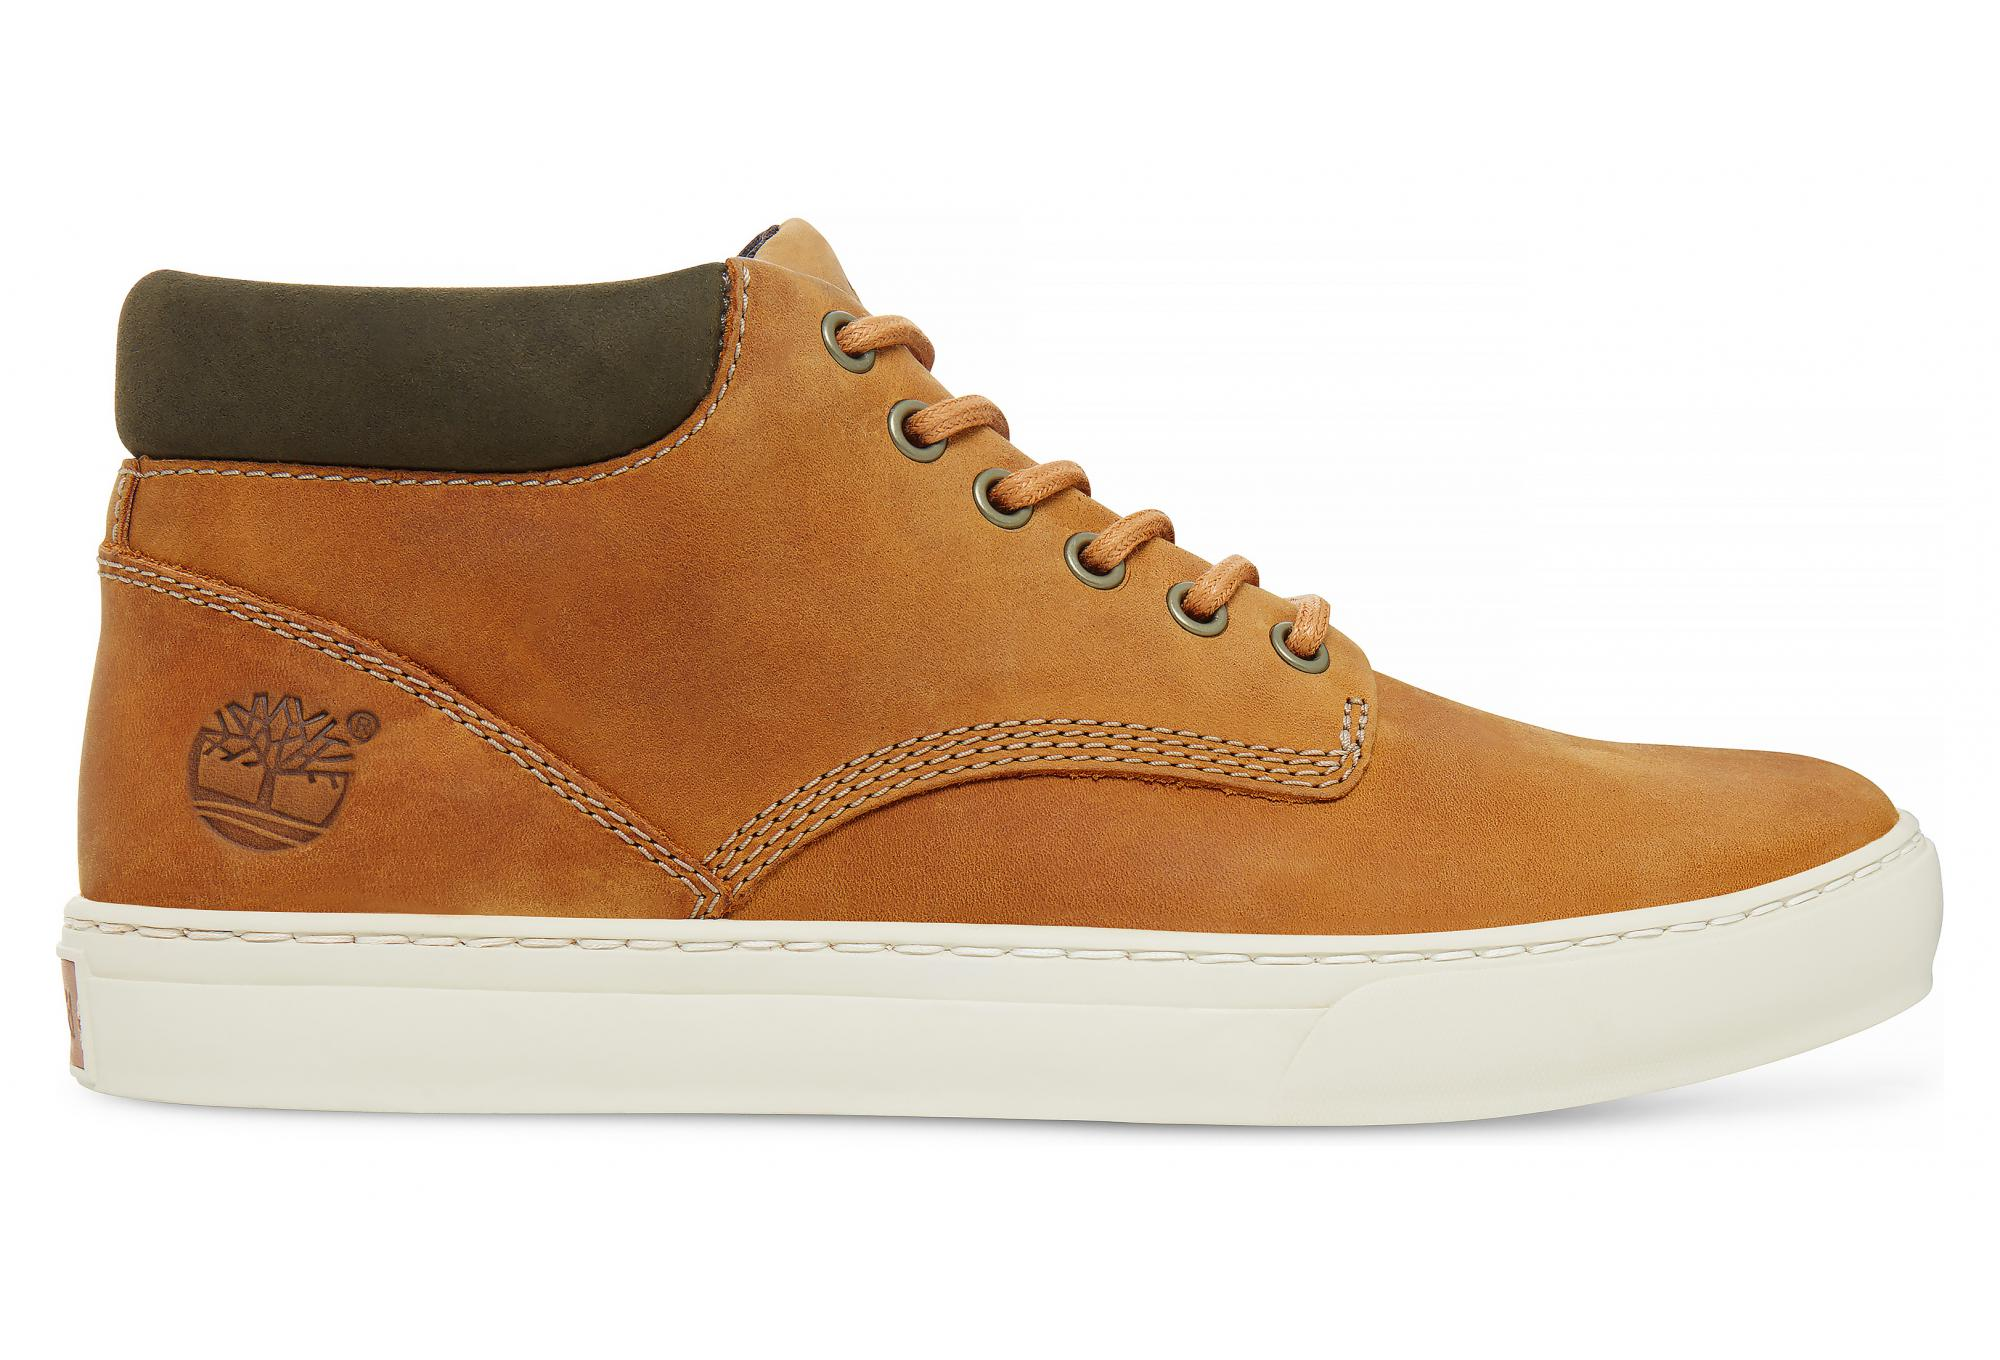 Timberland Shoes ADV2.0 Chukka Brown White